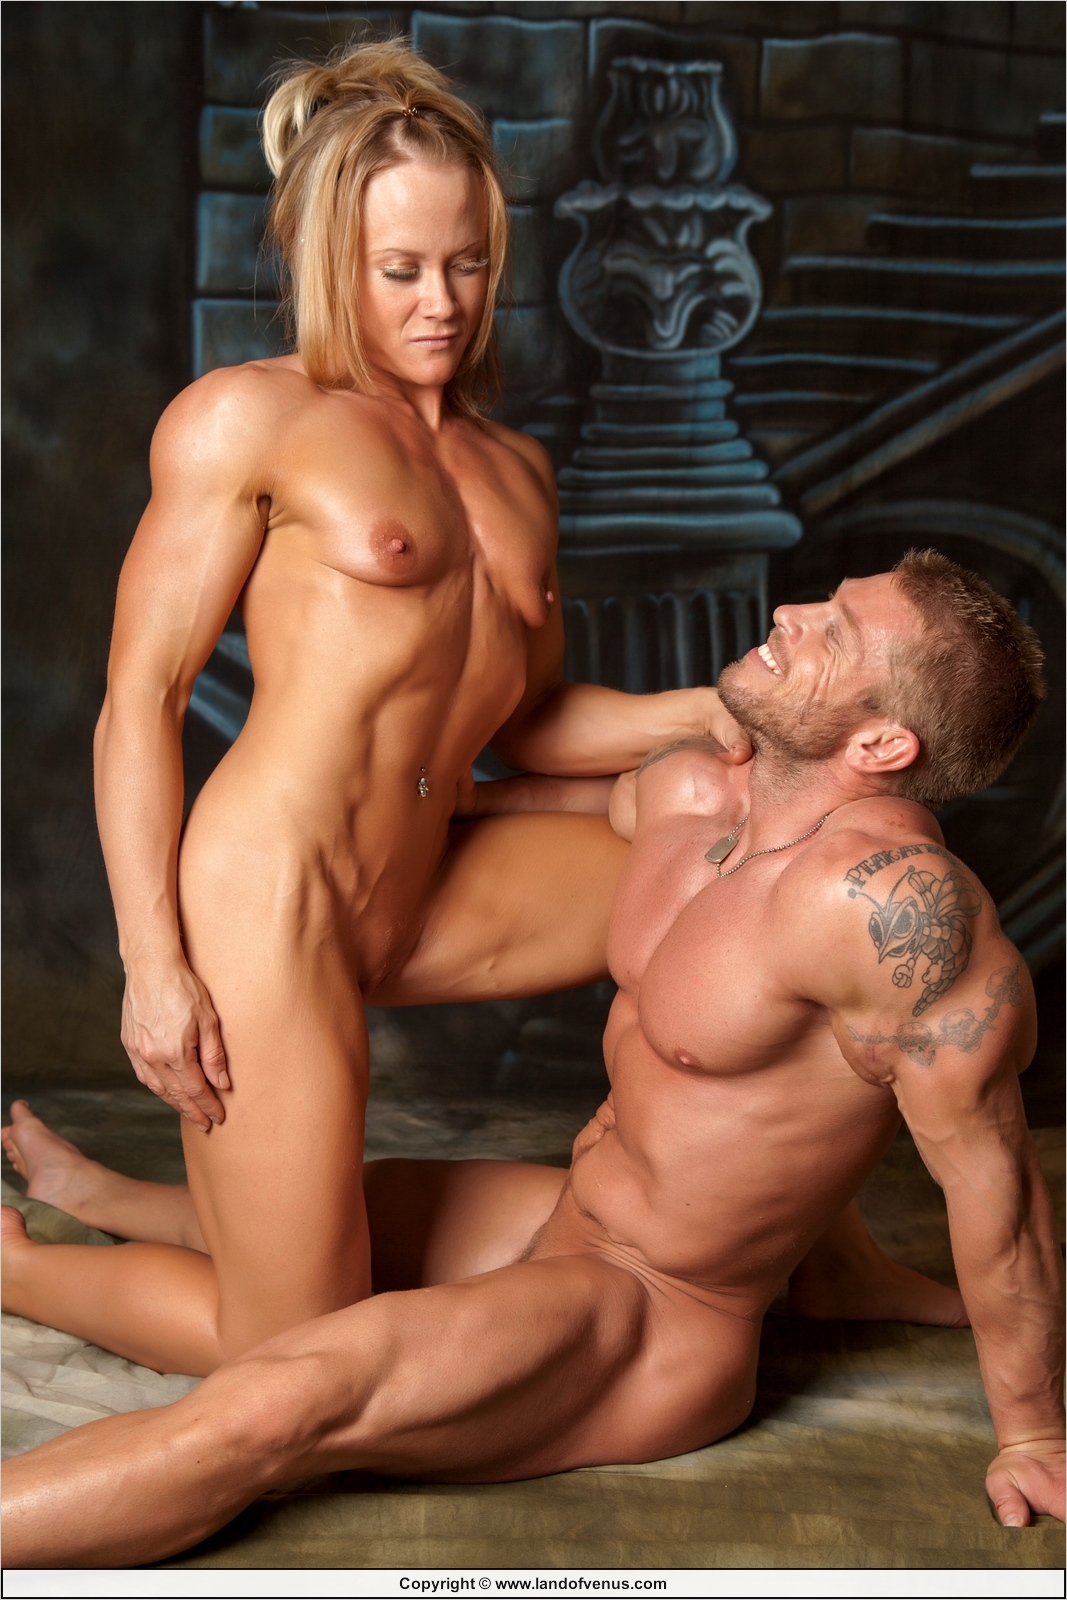 Talented idea women bodybuilders having sex